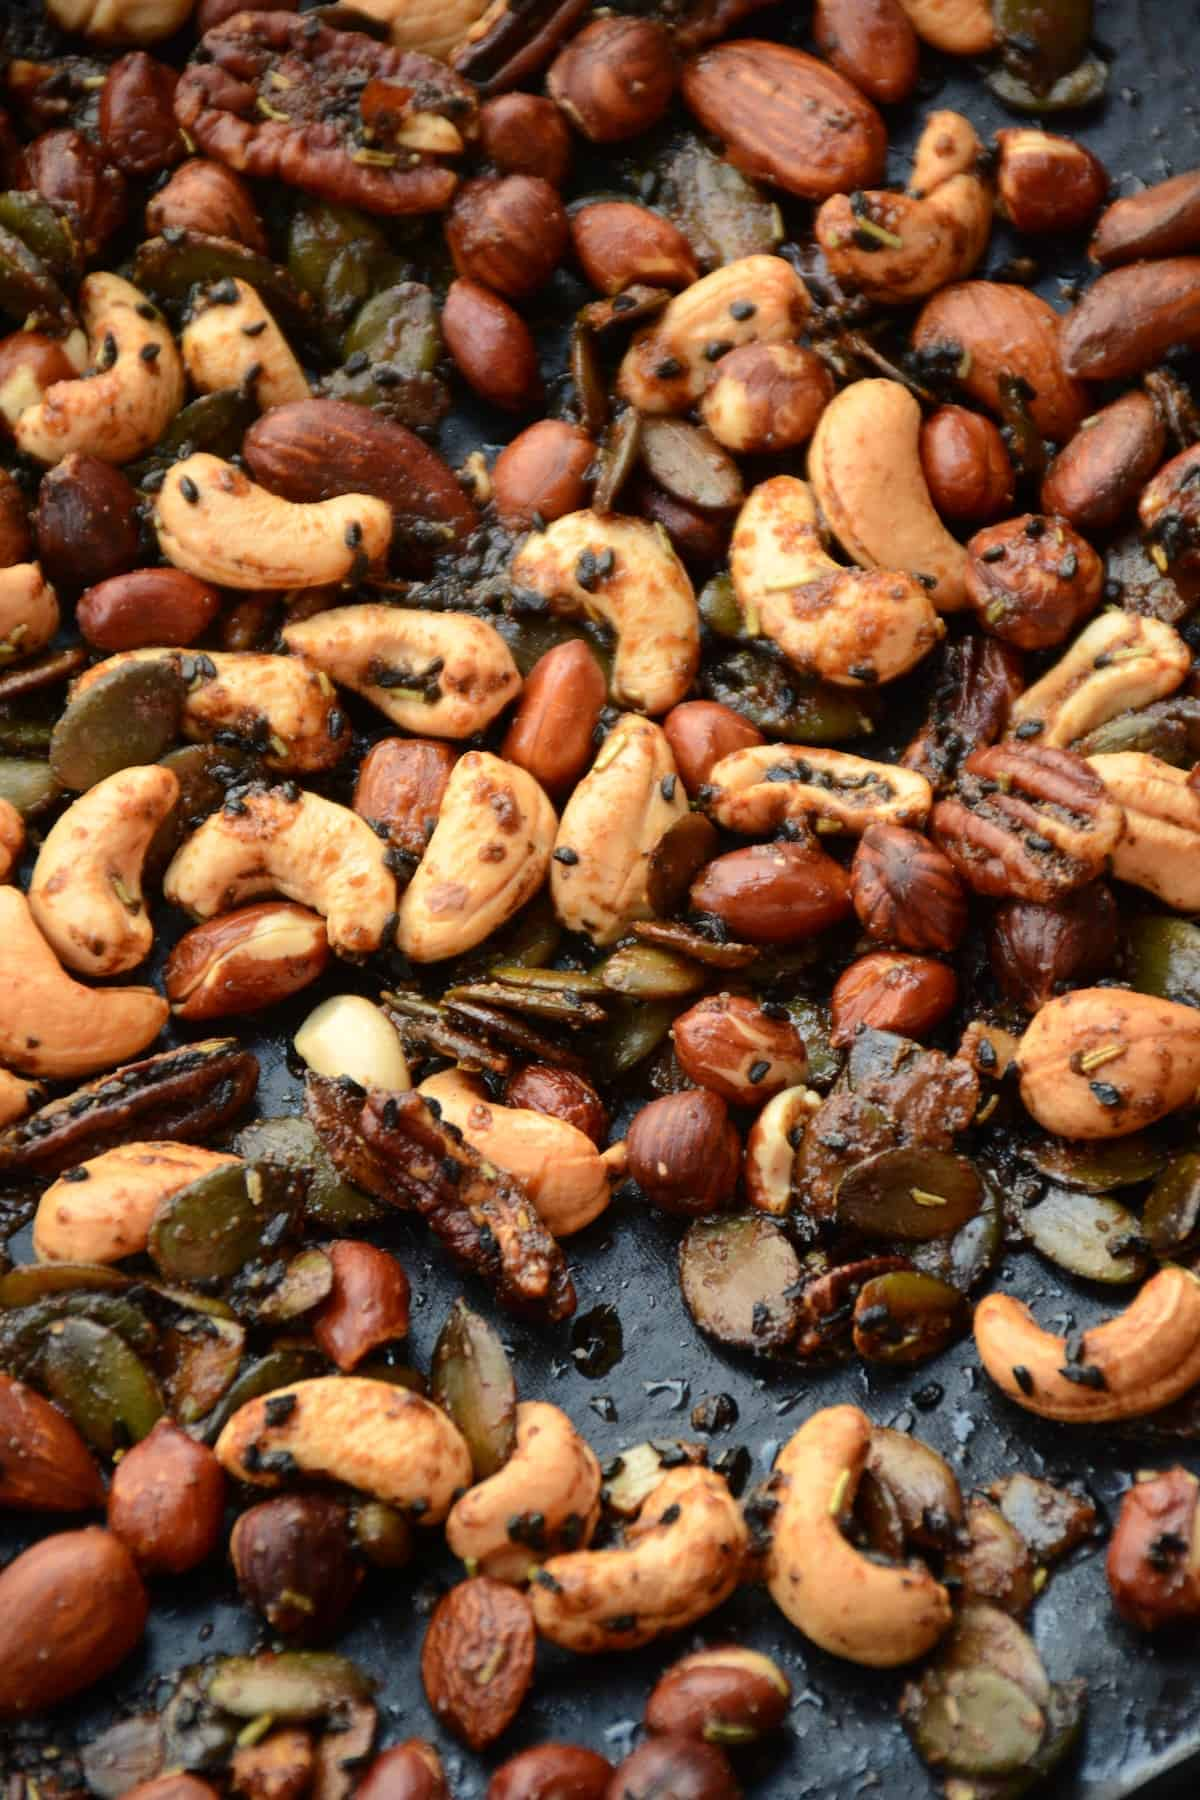 The golden brown colour of the roasted nuts.